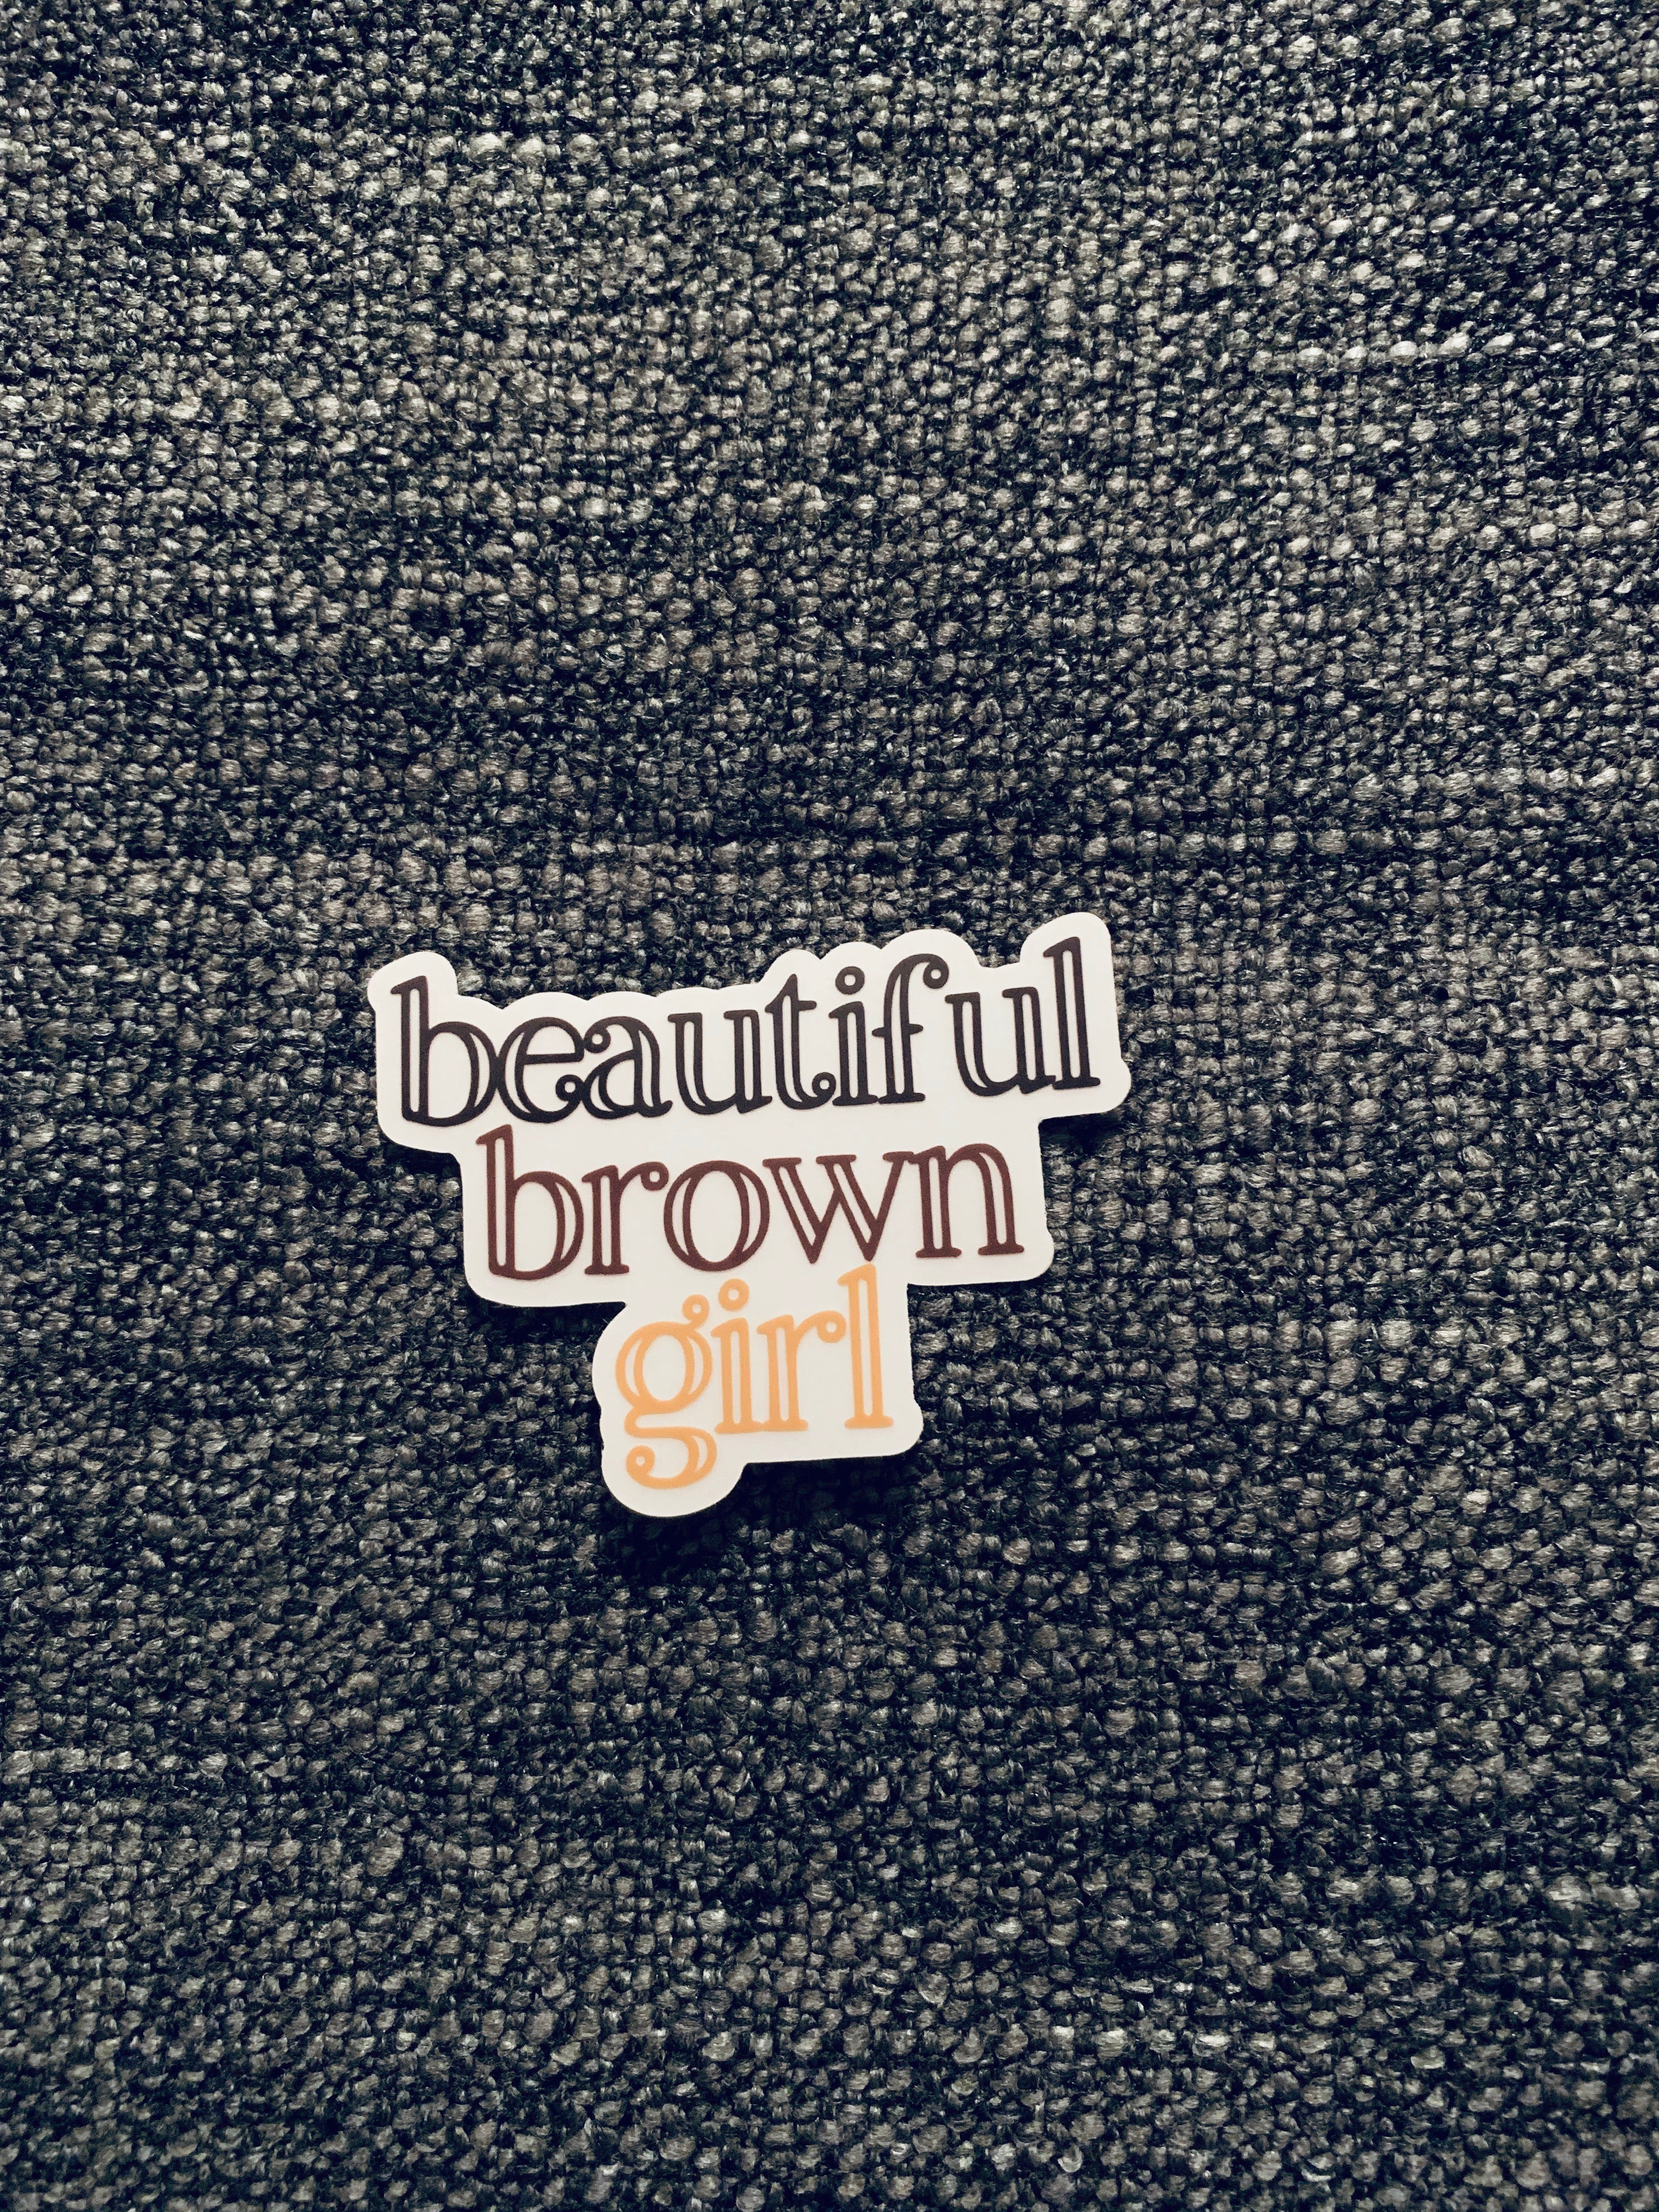 Beautiful Brown Girl Clear Sticker